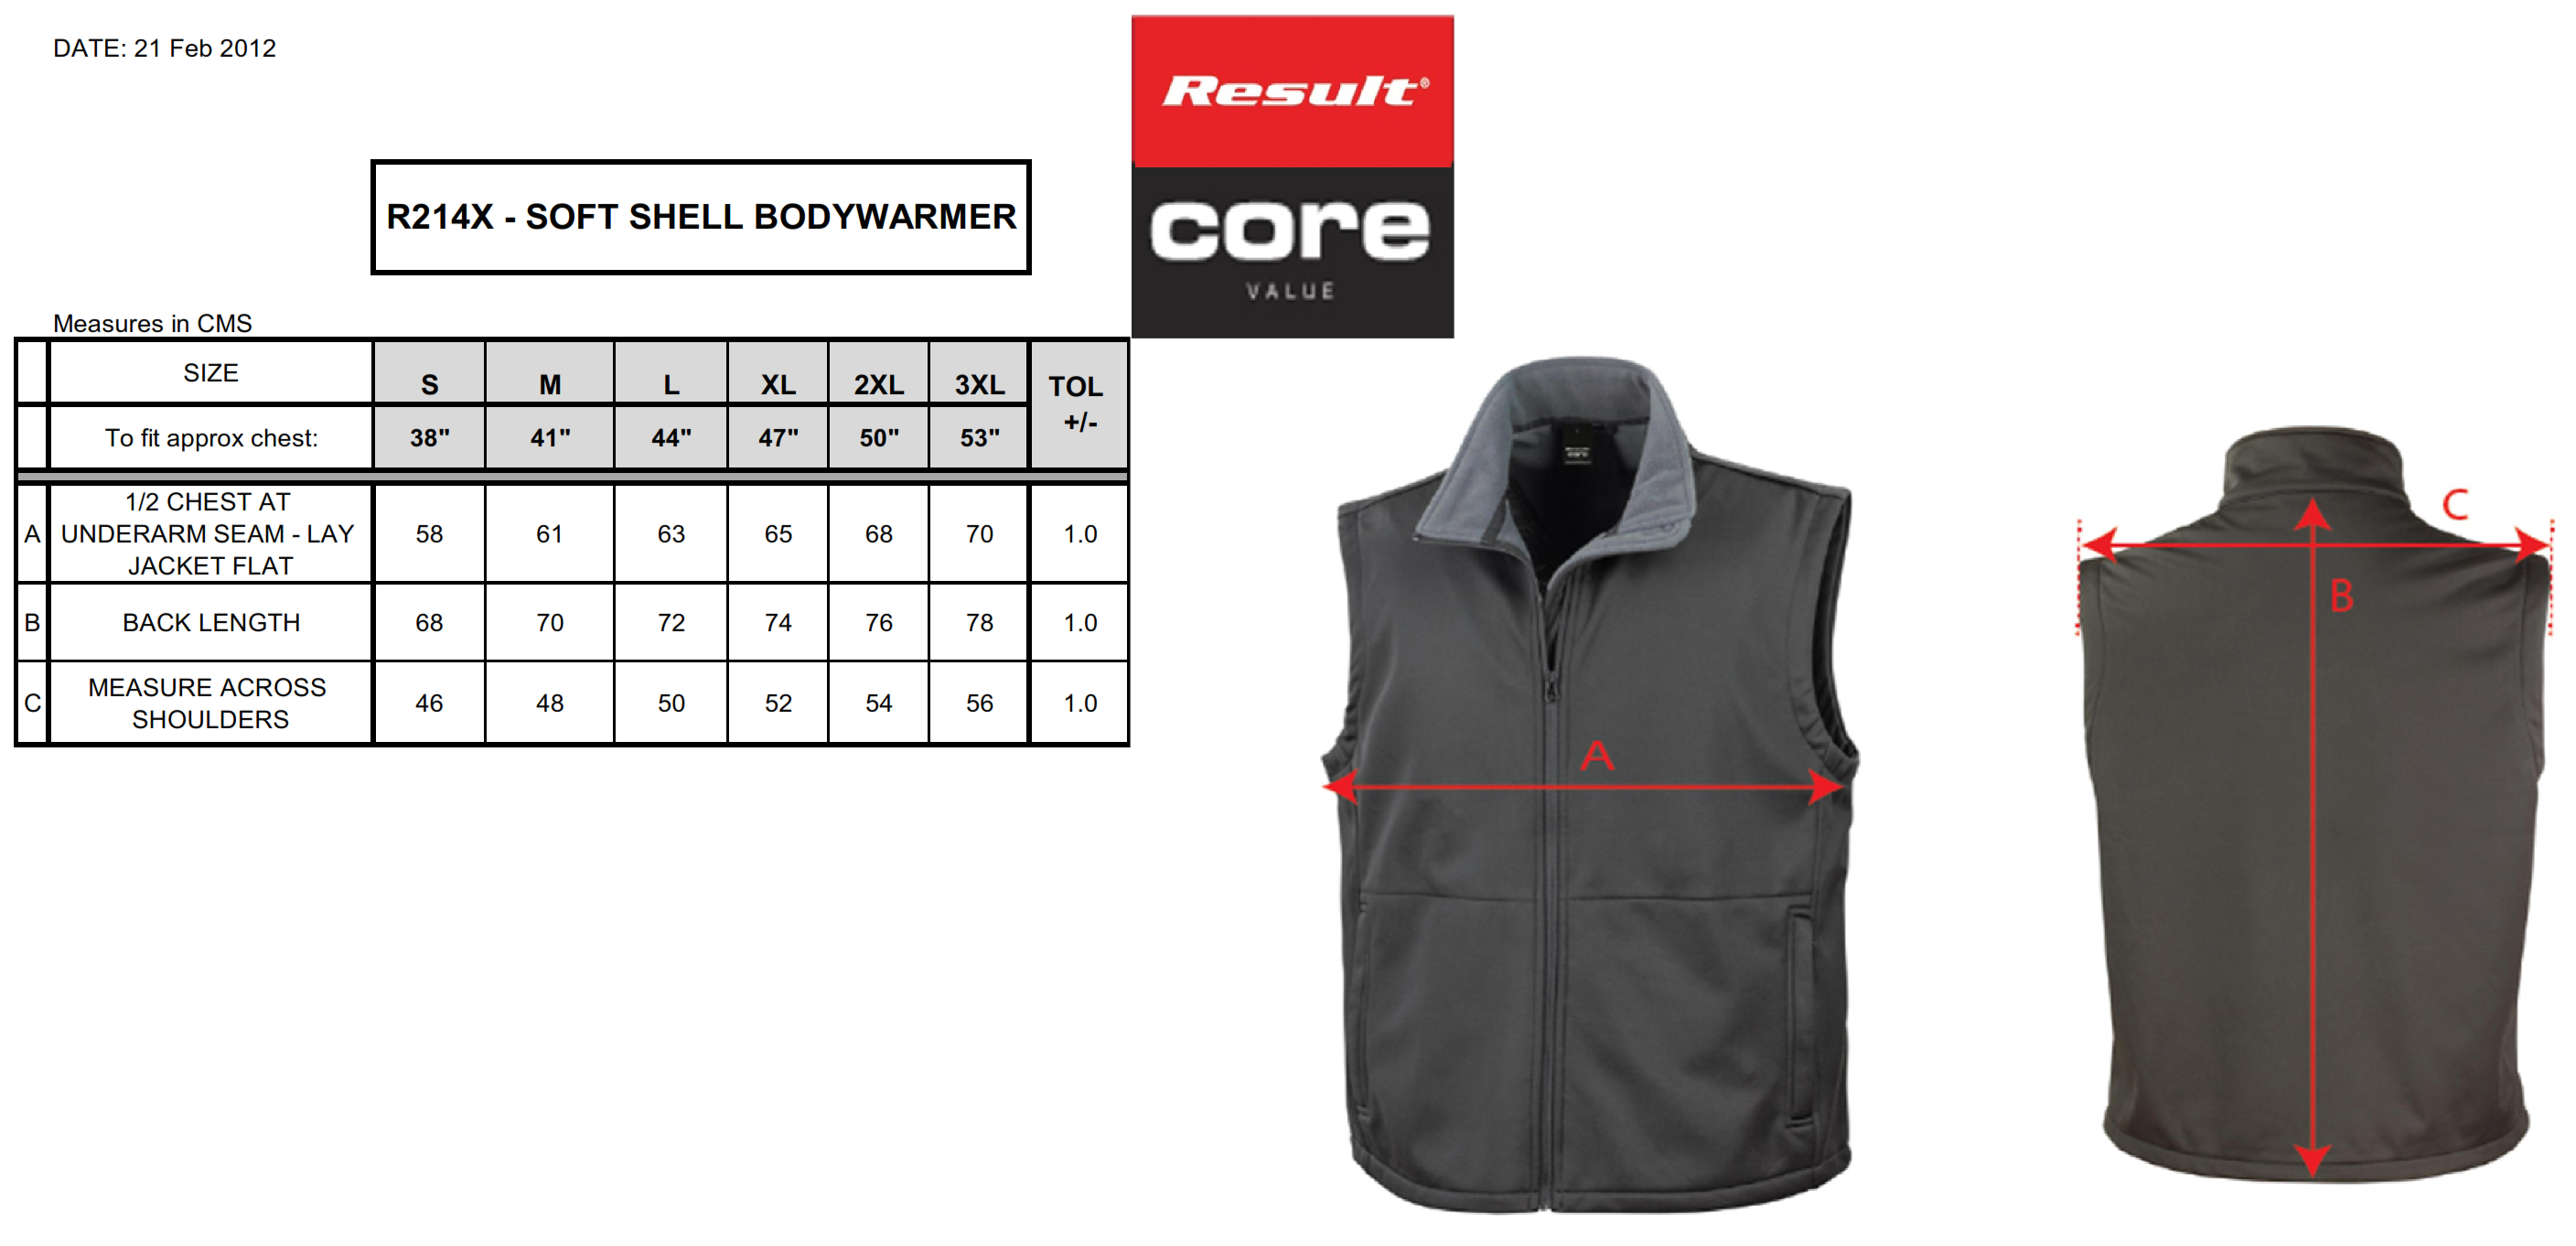 Result: Core Softshell Bodywarmer R214X